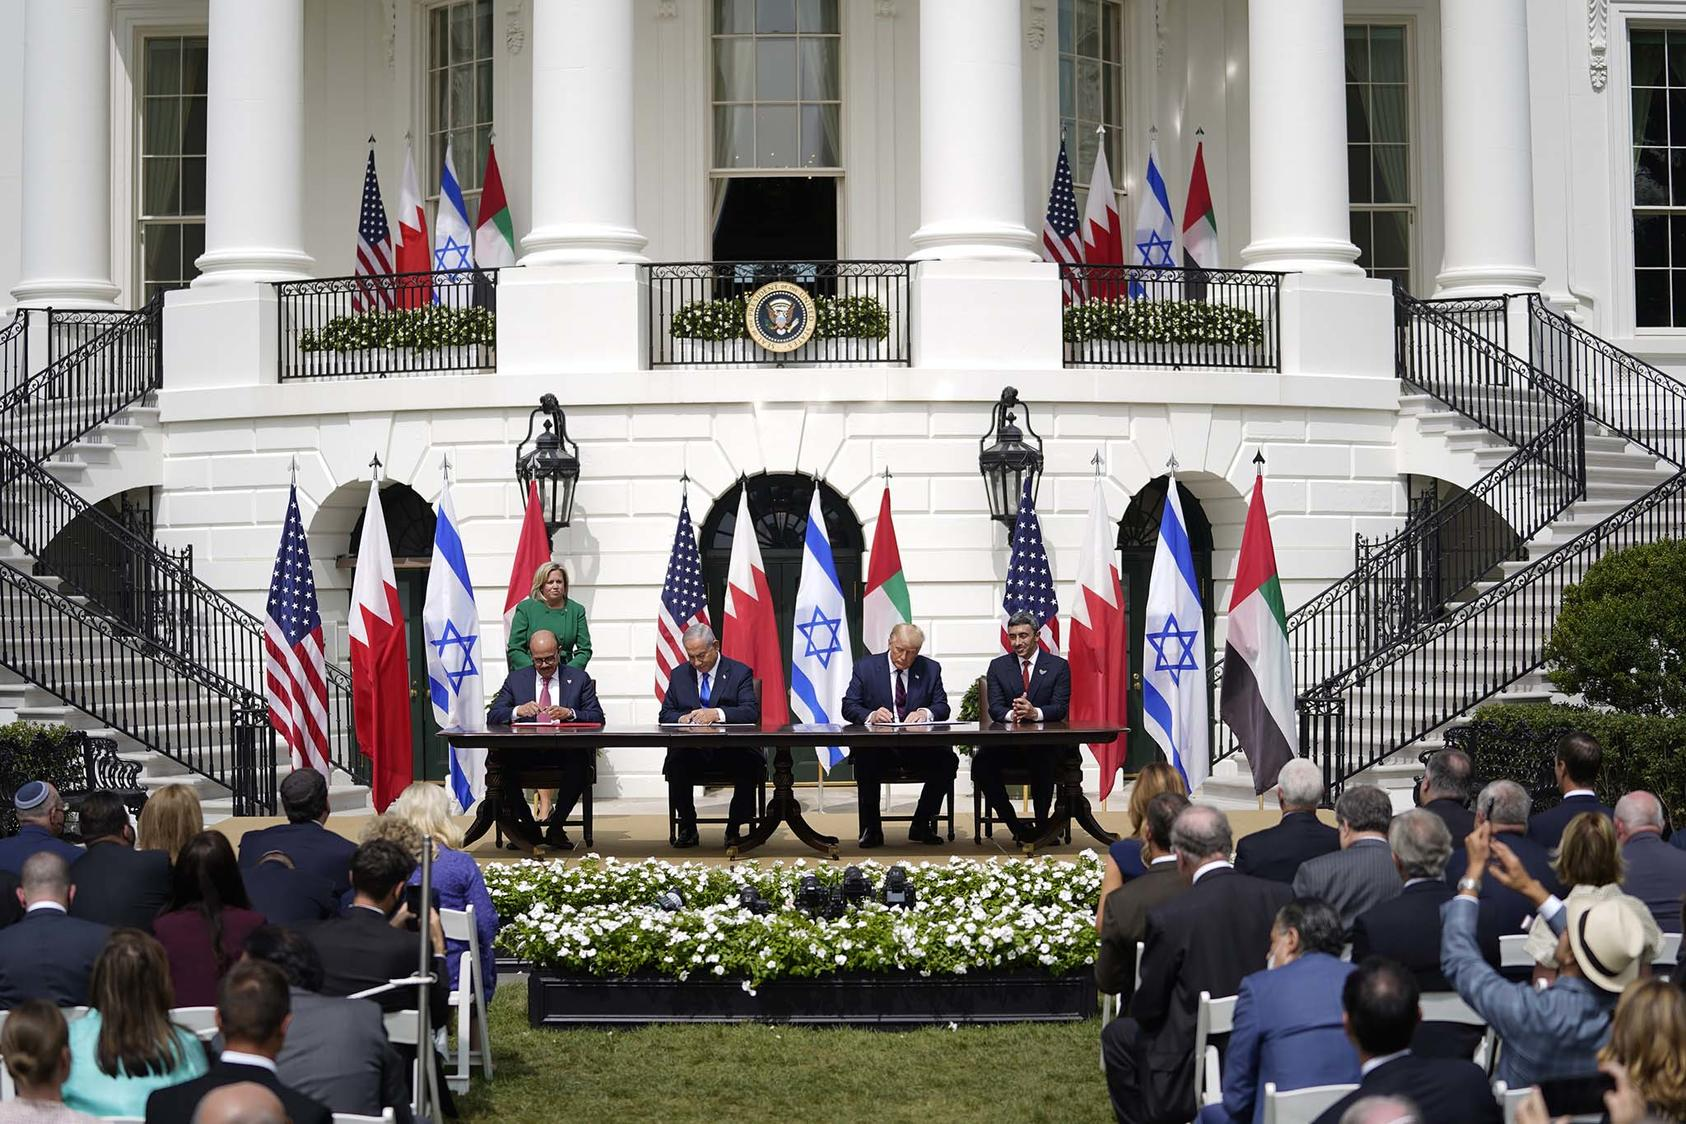 Representatives from Bahrain, Israel and the United Arab Emirates with President Trump during a signing ceremony for normalization agreements between Israel and the Arab states, Sept. 15, 2020. (Doug Mills/The New York Times)